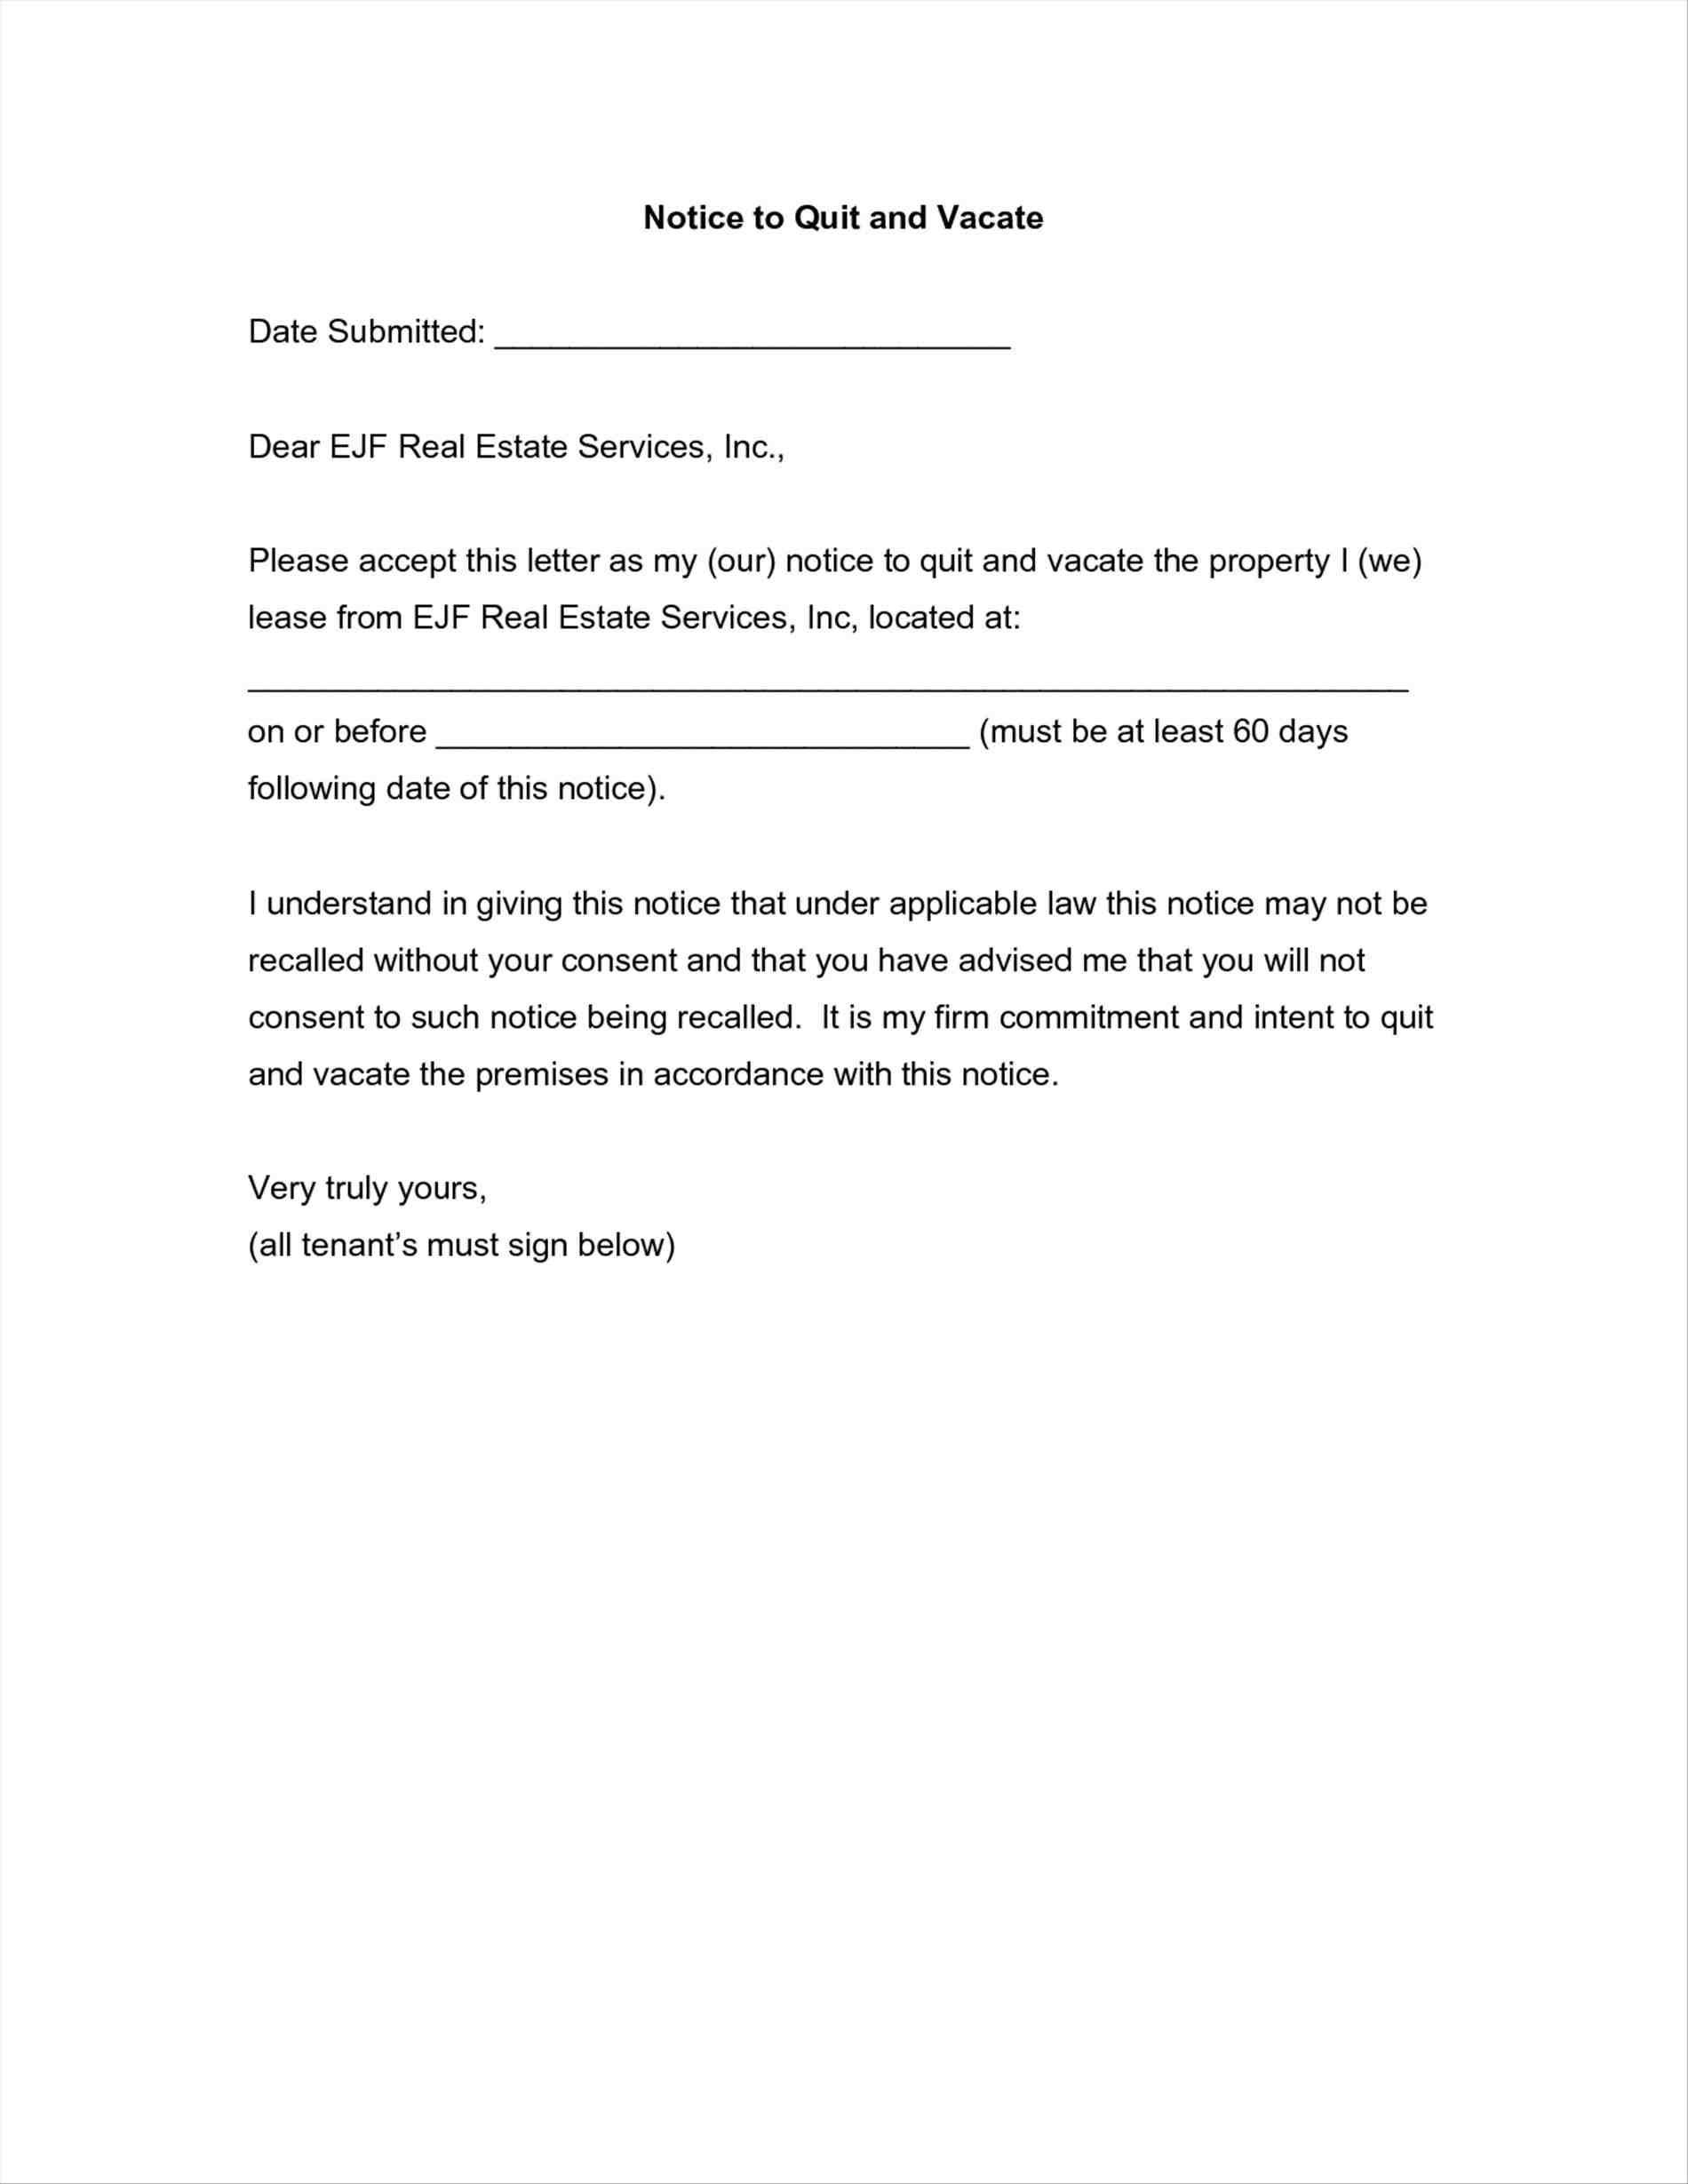 Giving Notice to Tenants Letter Template - Giving Notice to Landlord Template